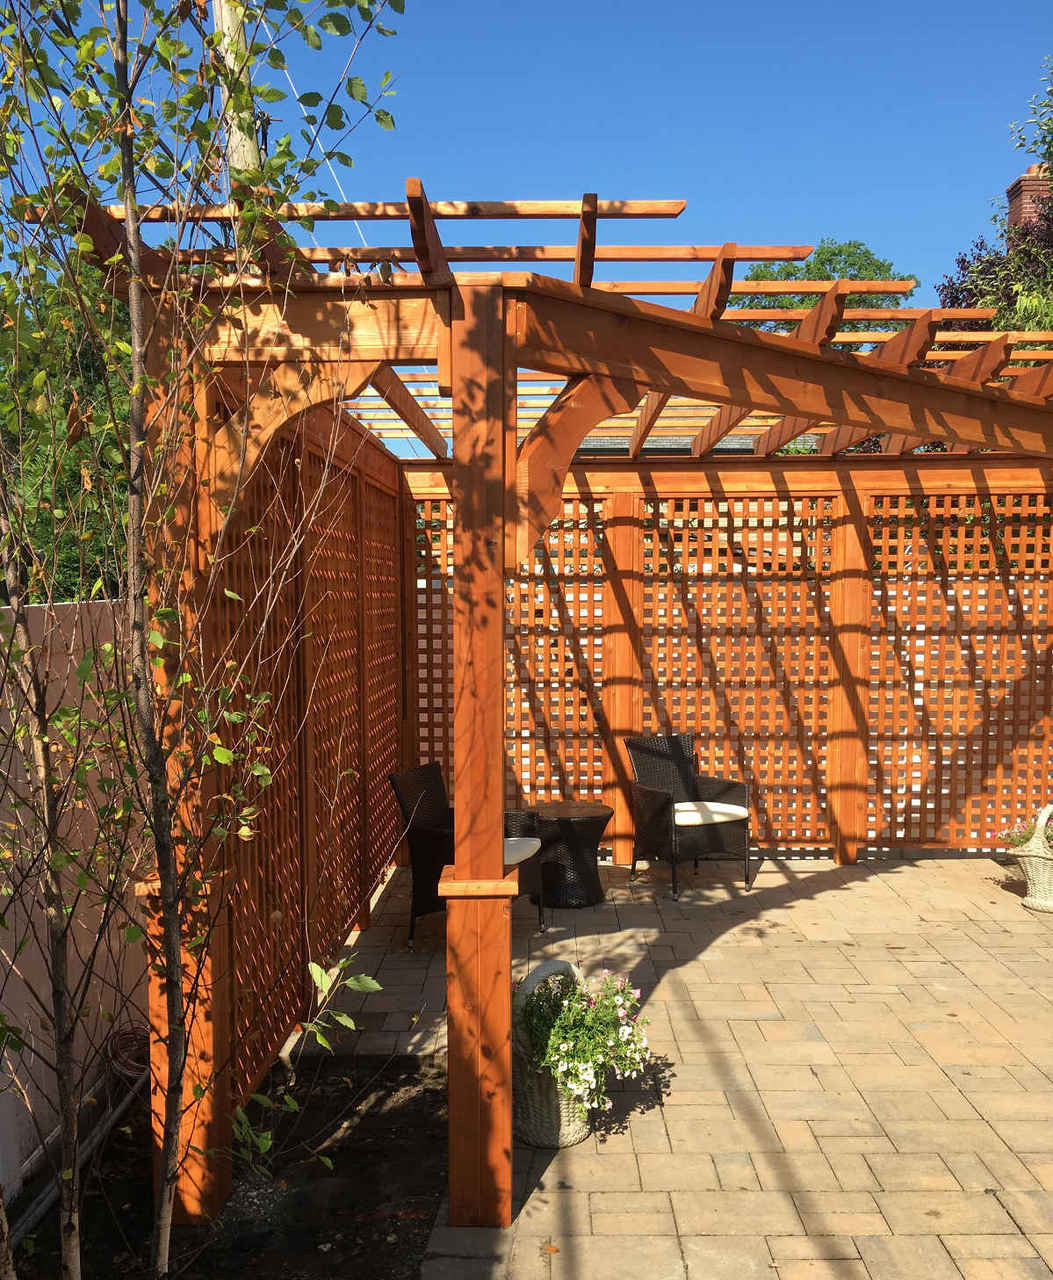 Triangle Pergola, Western Red Cedar, 14x14x17, Two 3ft extensions on either end, Cedar Stain and Sealant, Full Height Lattice Walls. Westbury, NY.